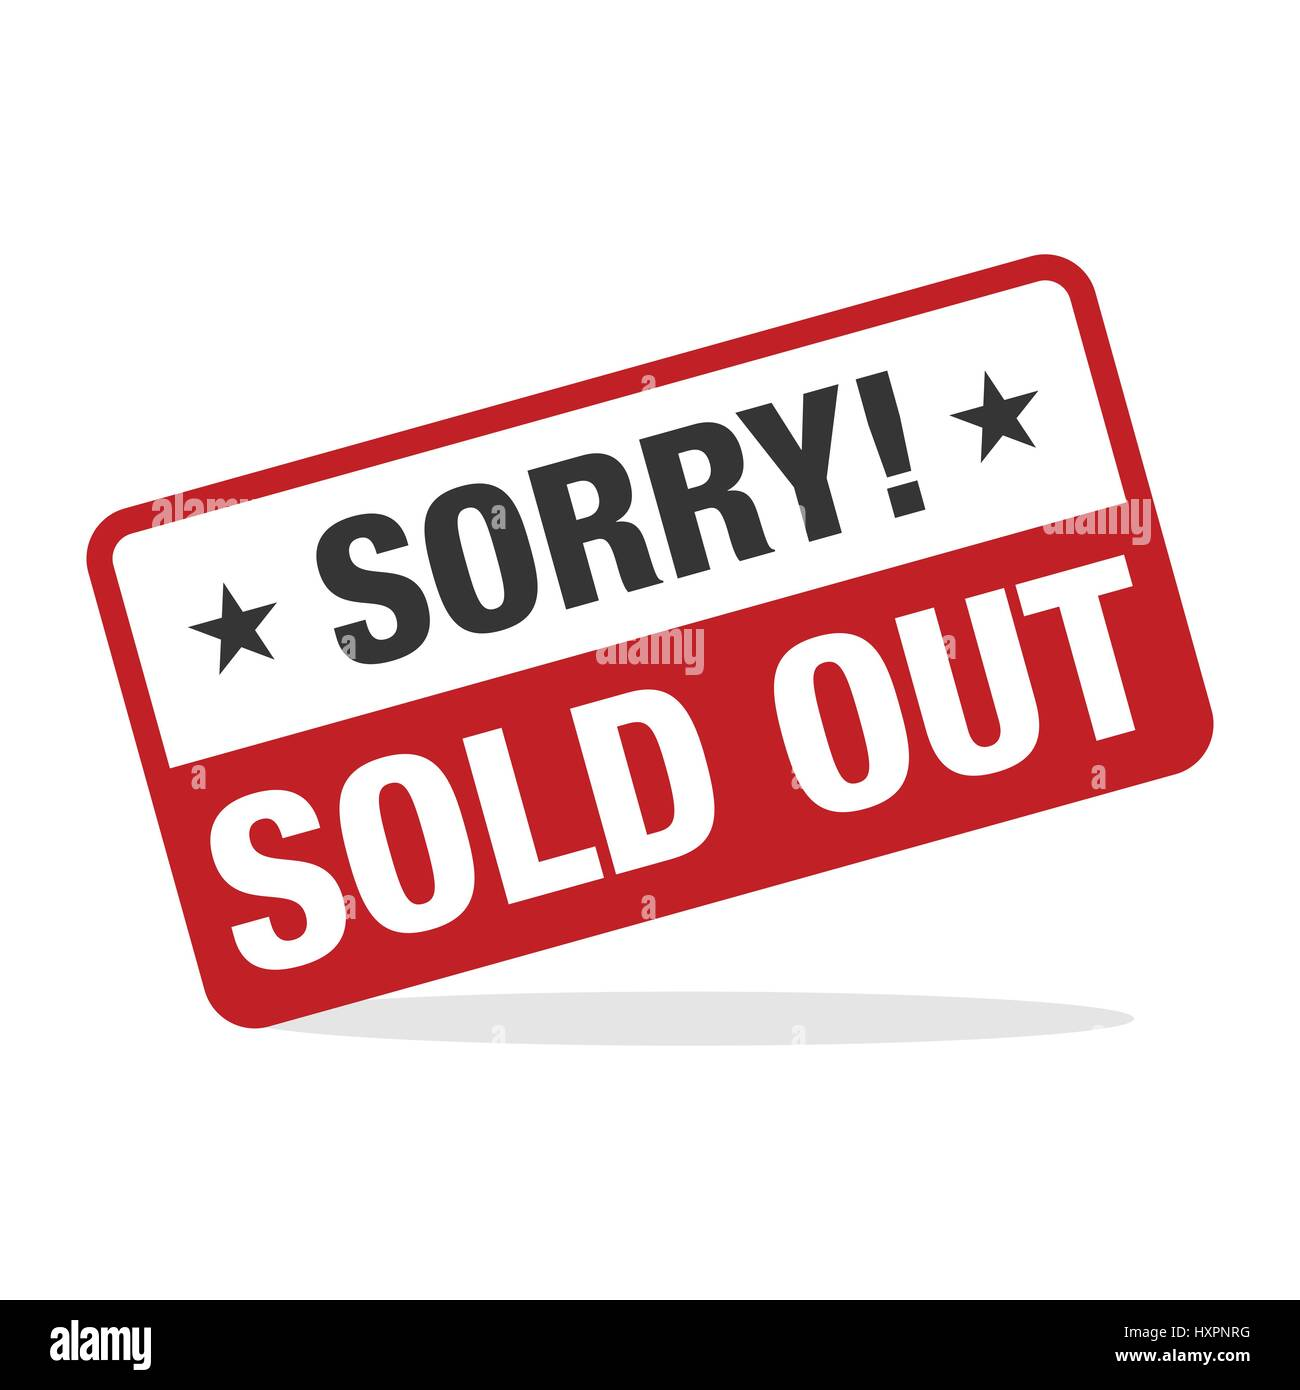 Sorry it/'s sold out !!!!!